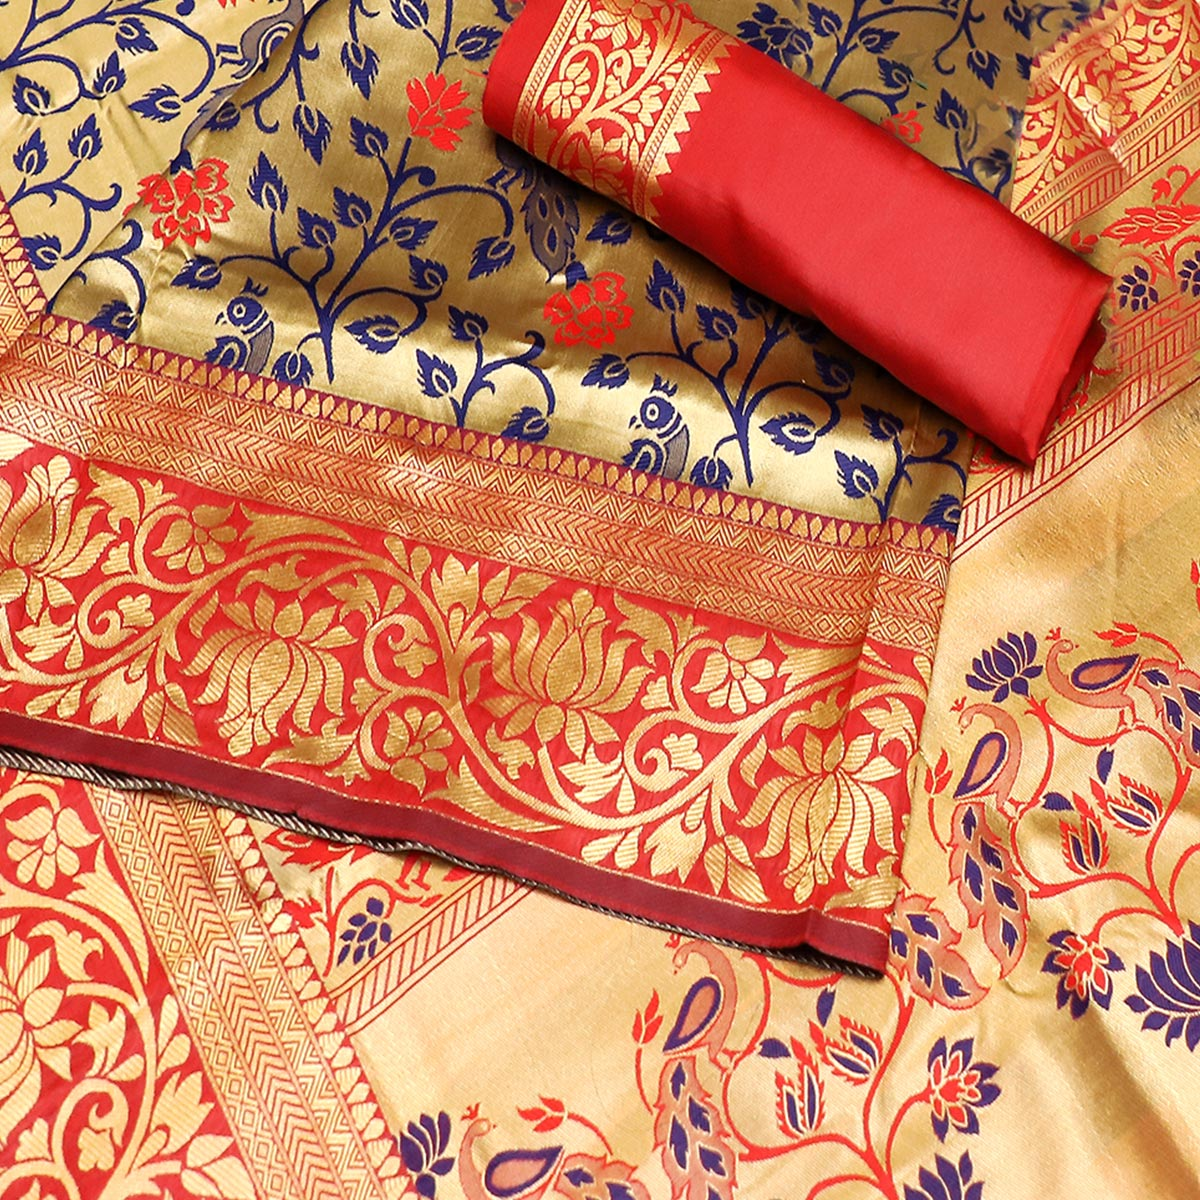 Ravishing Gold-Red Colored Festive Wear Woven Banarasi Paithani Saree